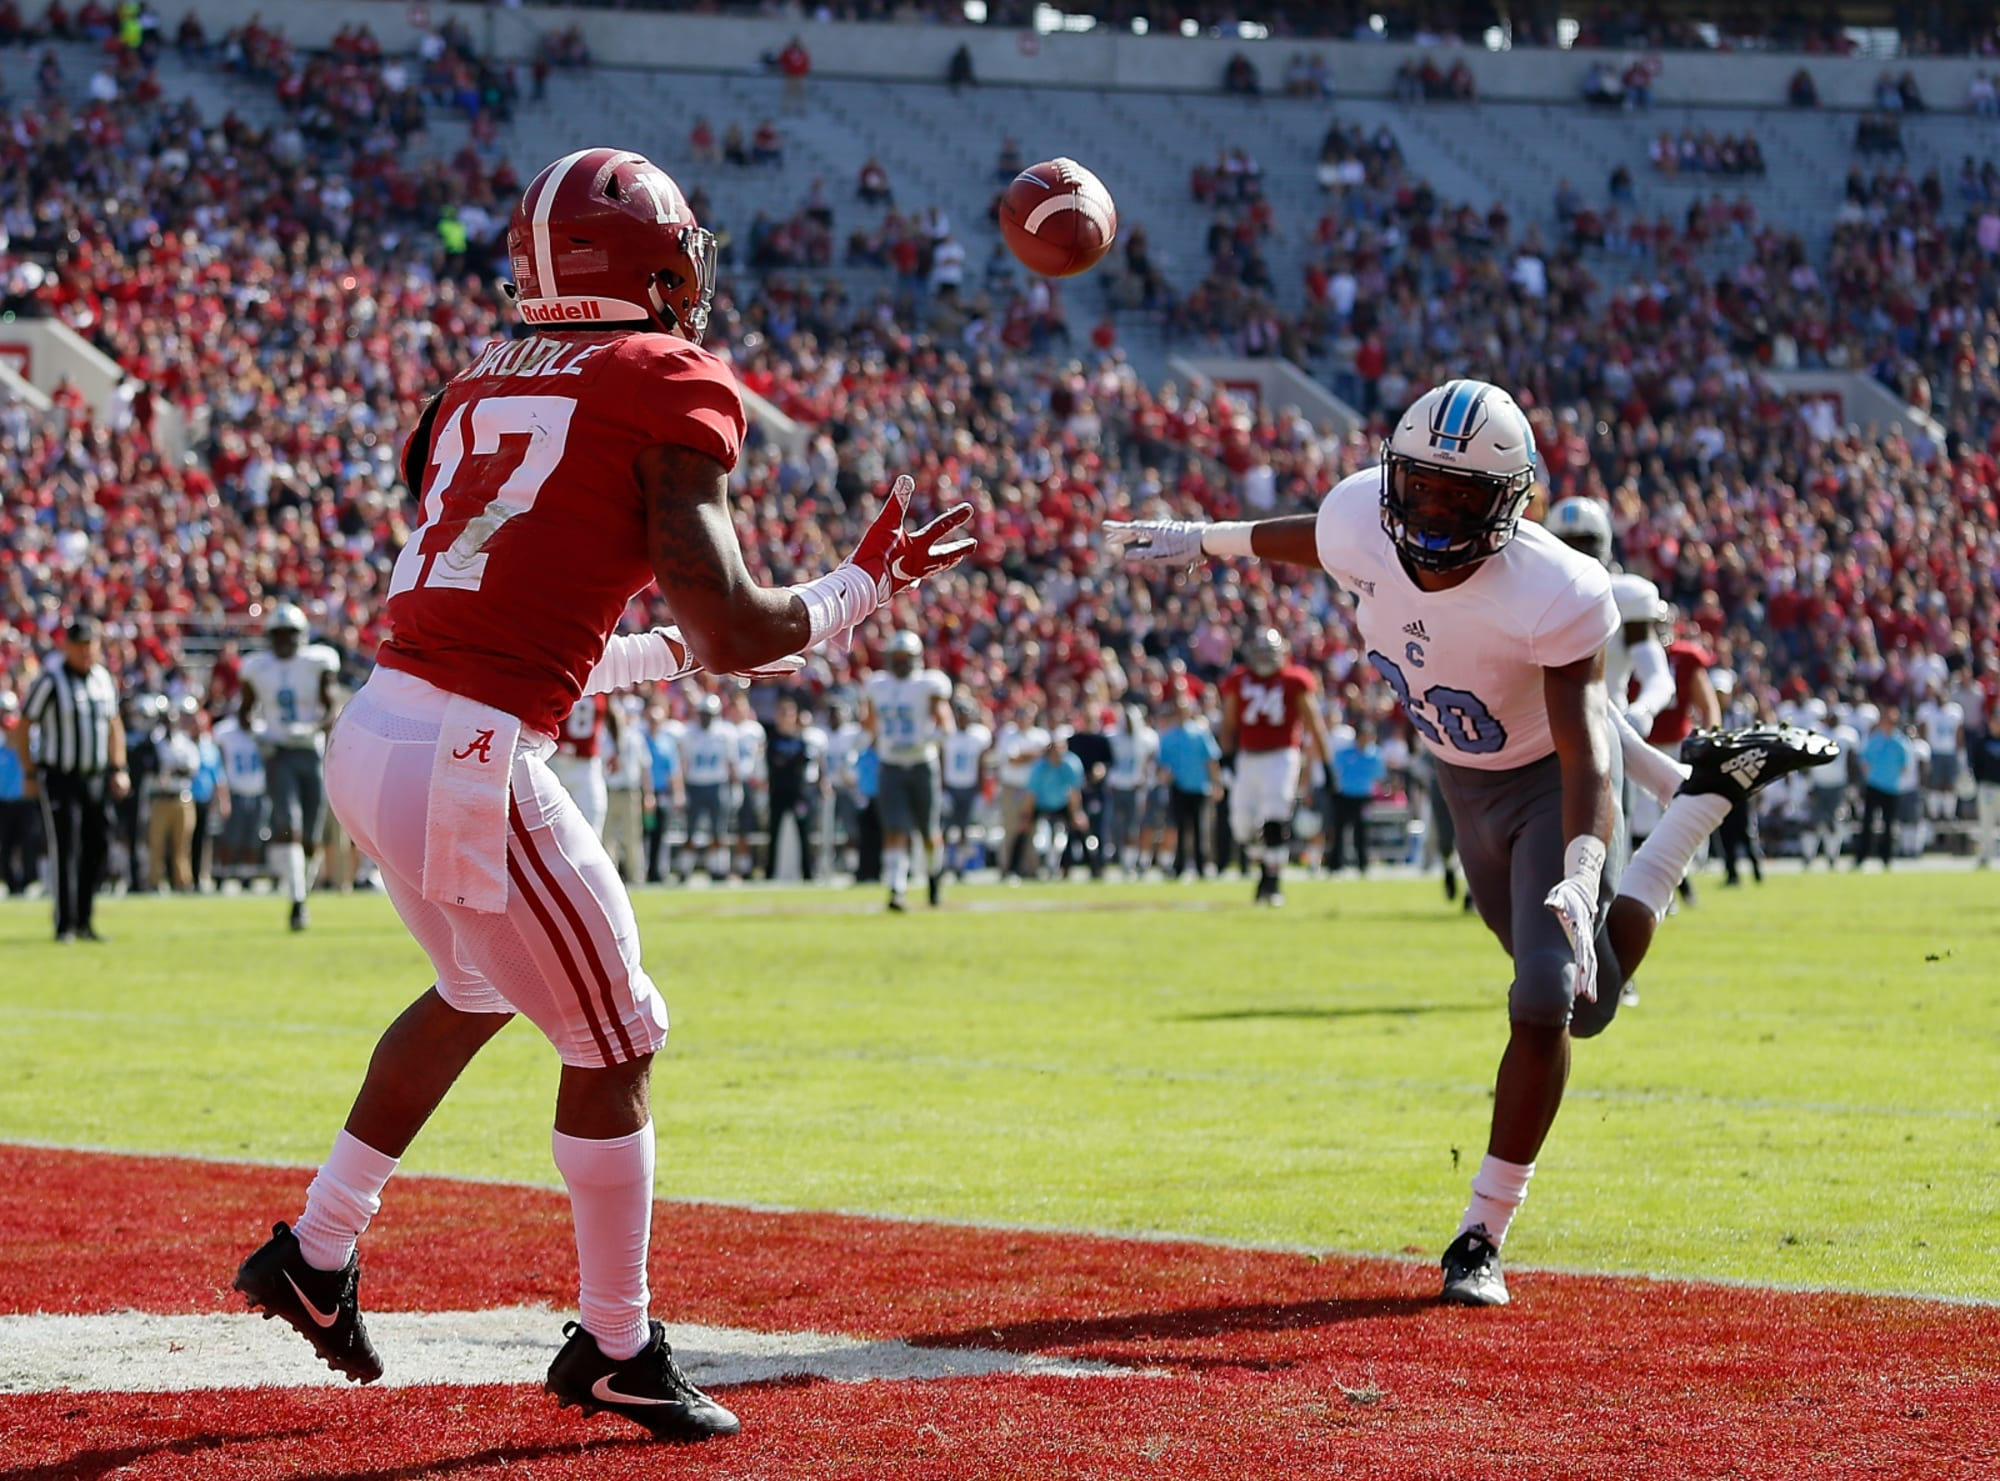 Alabama Football: The good and the bad from The Citadel game